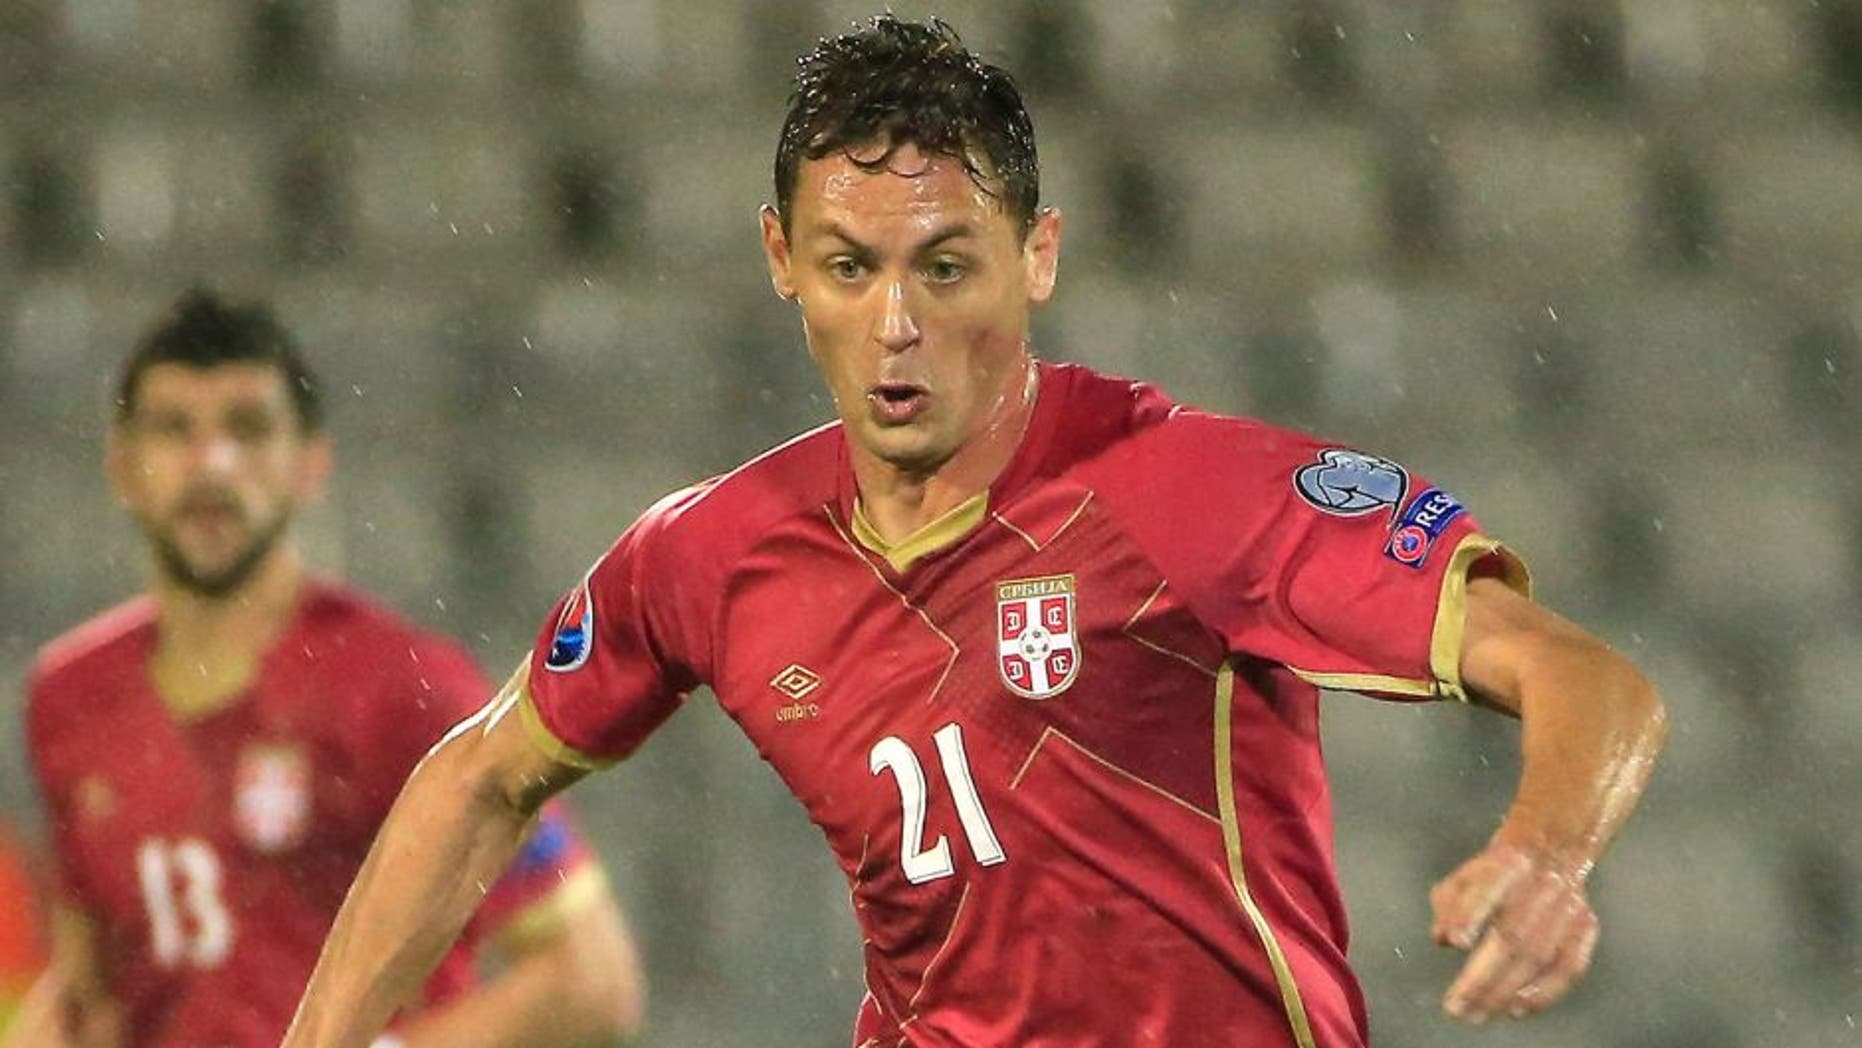 BELGRADE, SERBIA - OCTOBER 11: Nemanja Matic of Serbia in action during the Euro 2016 qualifying football match between Serbia and Portugal at the Stadium FC Partizan in Belgrade on October 11, 2015. (Photo by Srdjan Stevanovic/Getty Images)